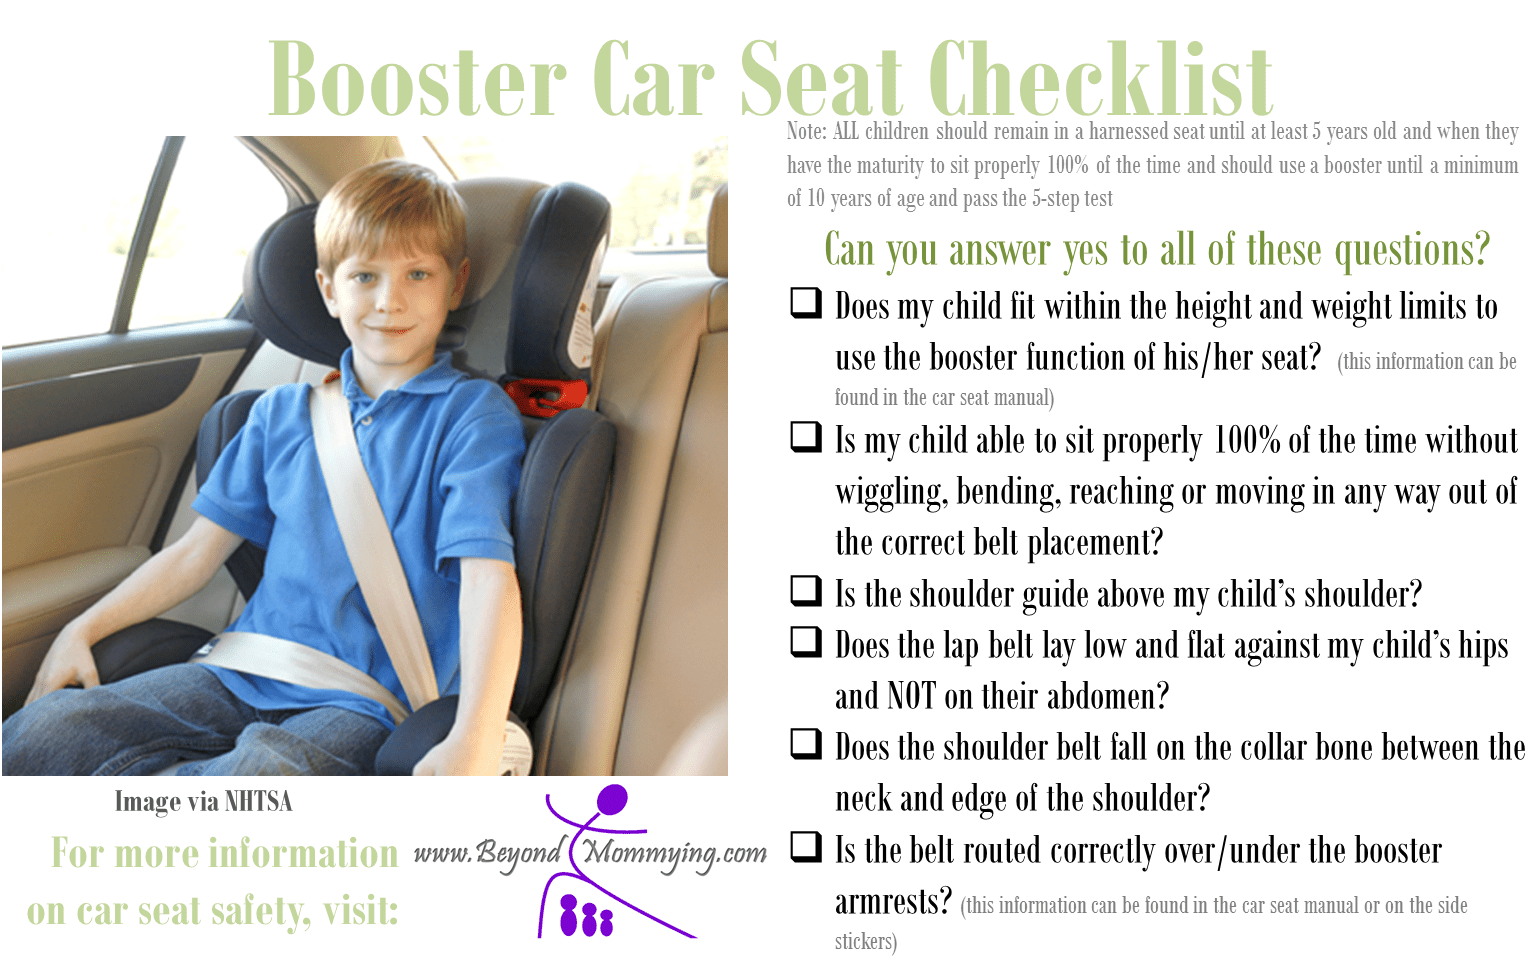 Car Seat Safety: Checklists for Proper Car Seat Use ...